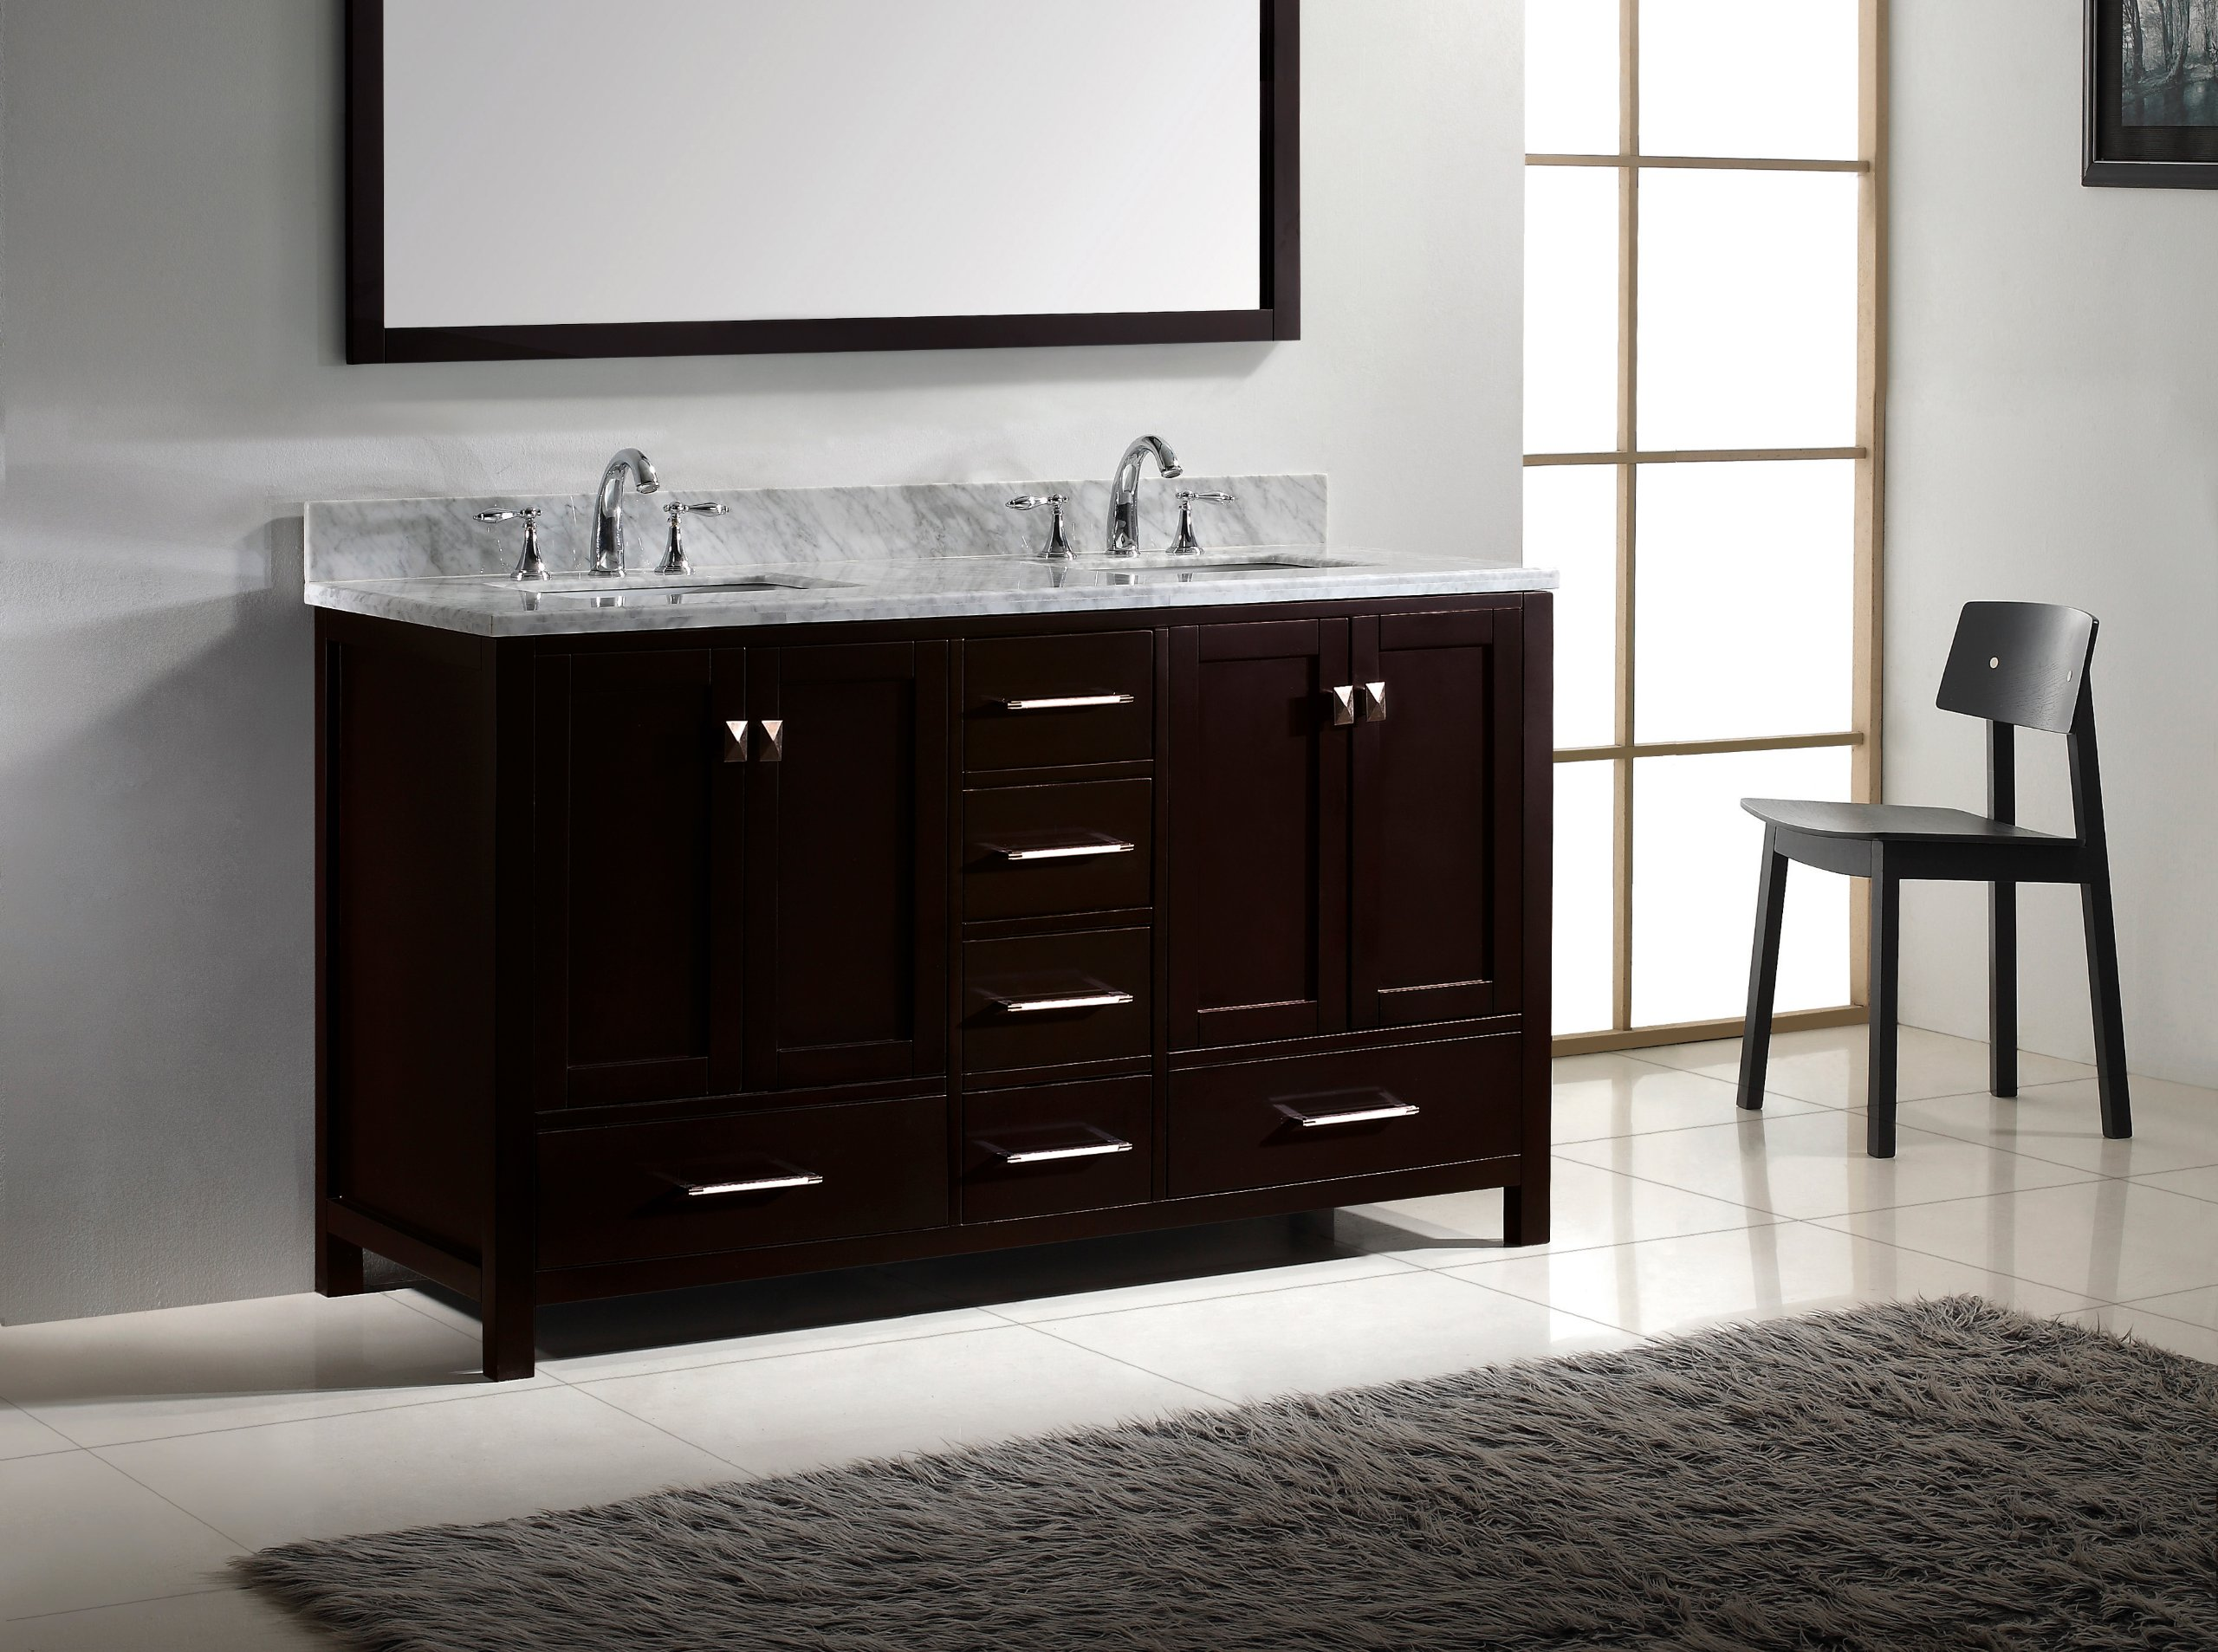 Virtu USA GD-50060-WMSQ-ES Caroline Avenue 60-Inch Bathroom Vanity with Double Square Sinks in Espresso and Italian Carrara White Marble